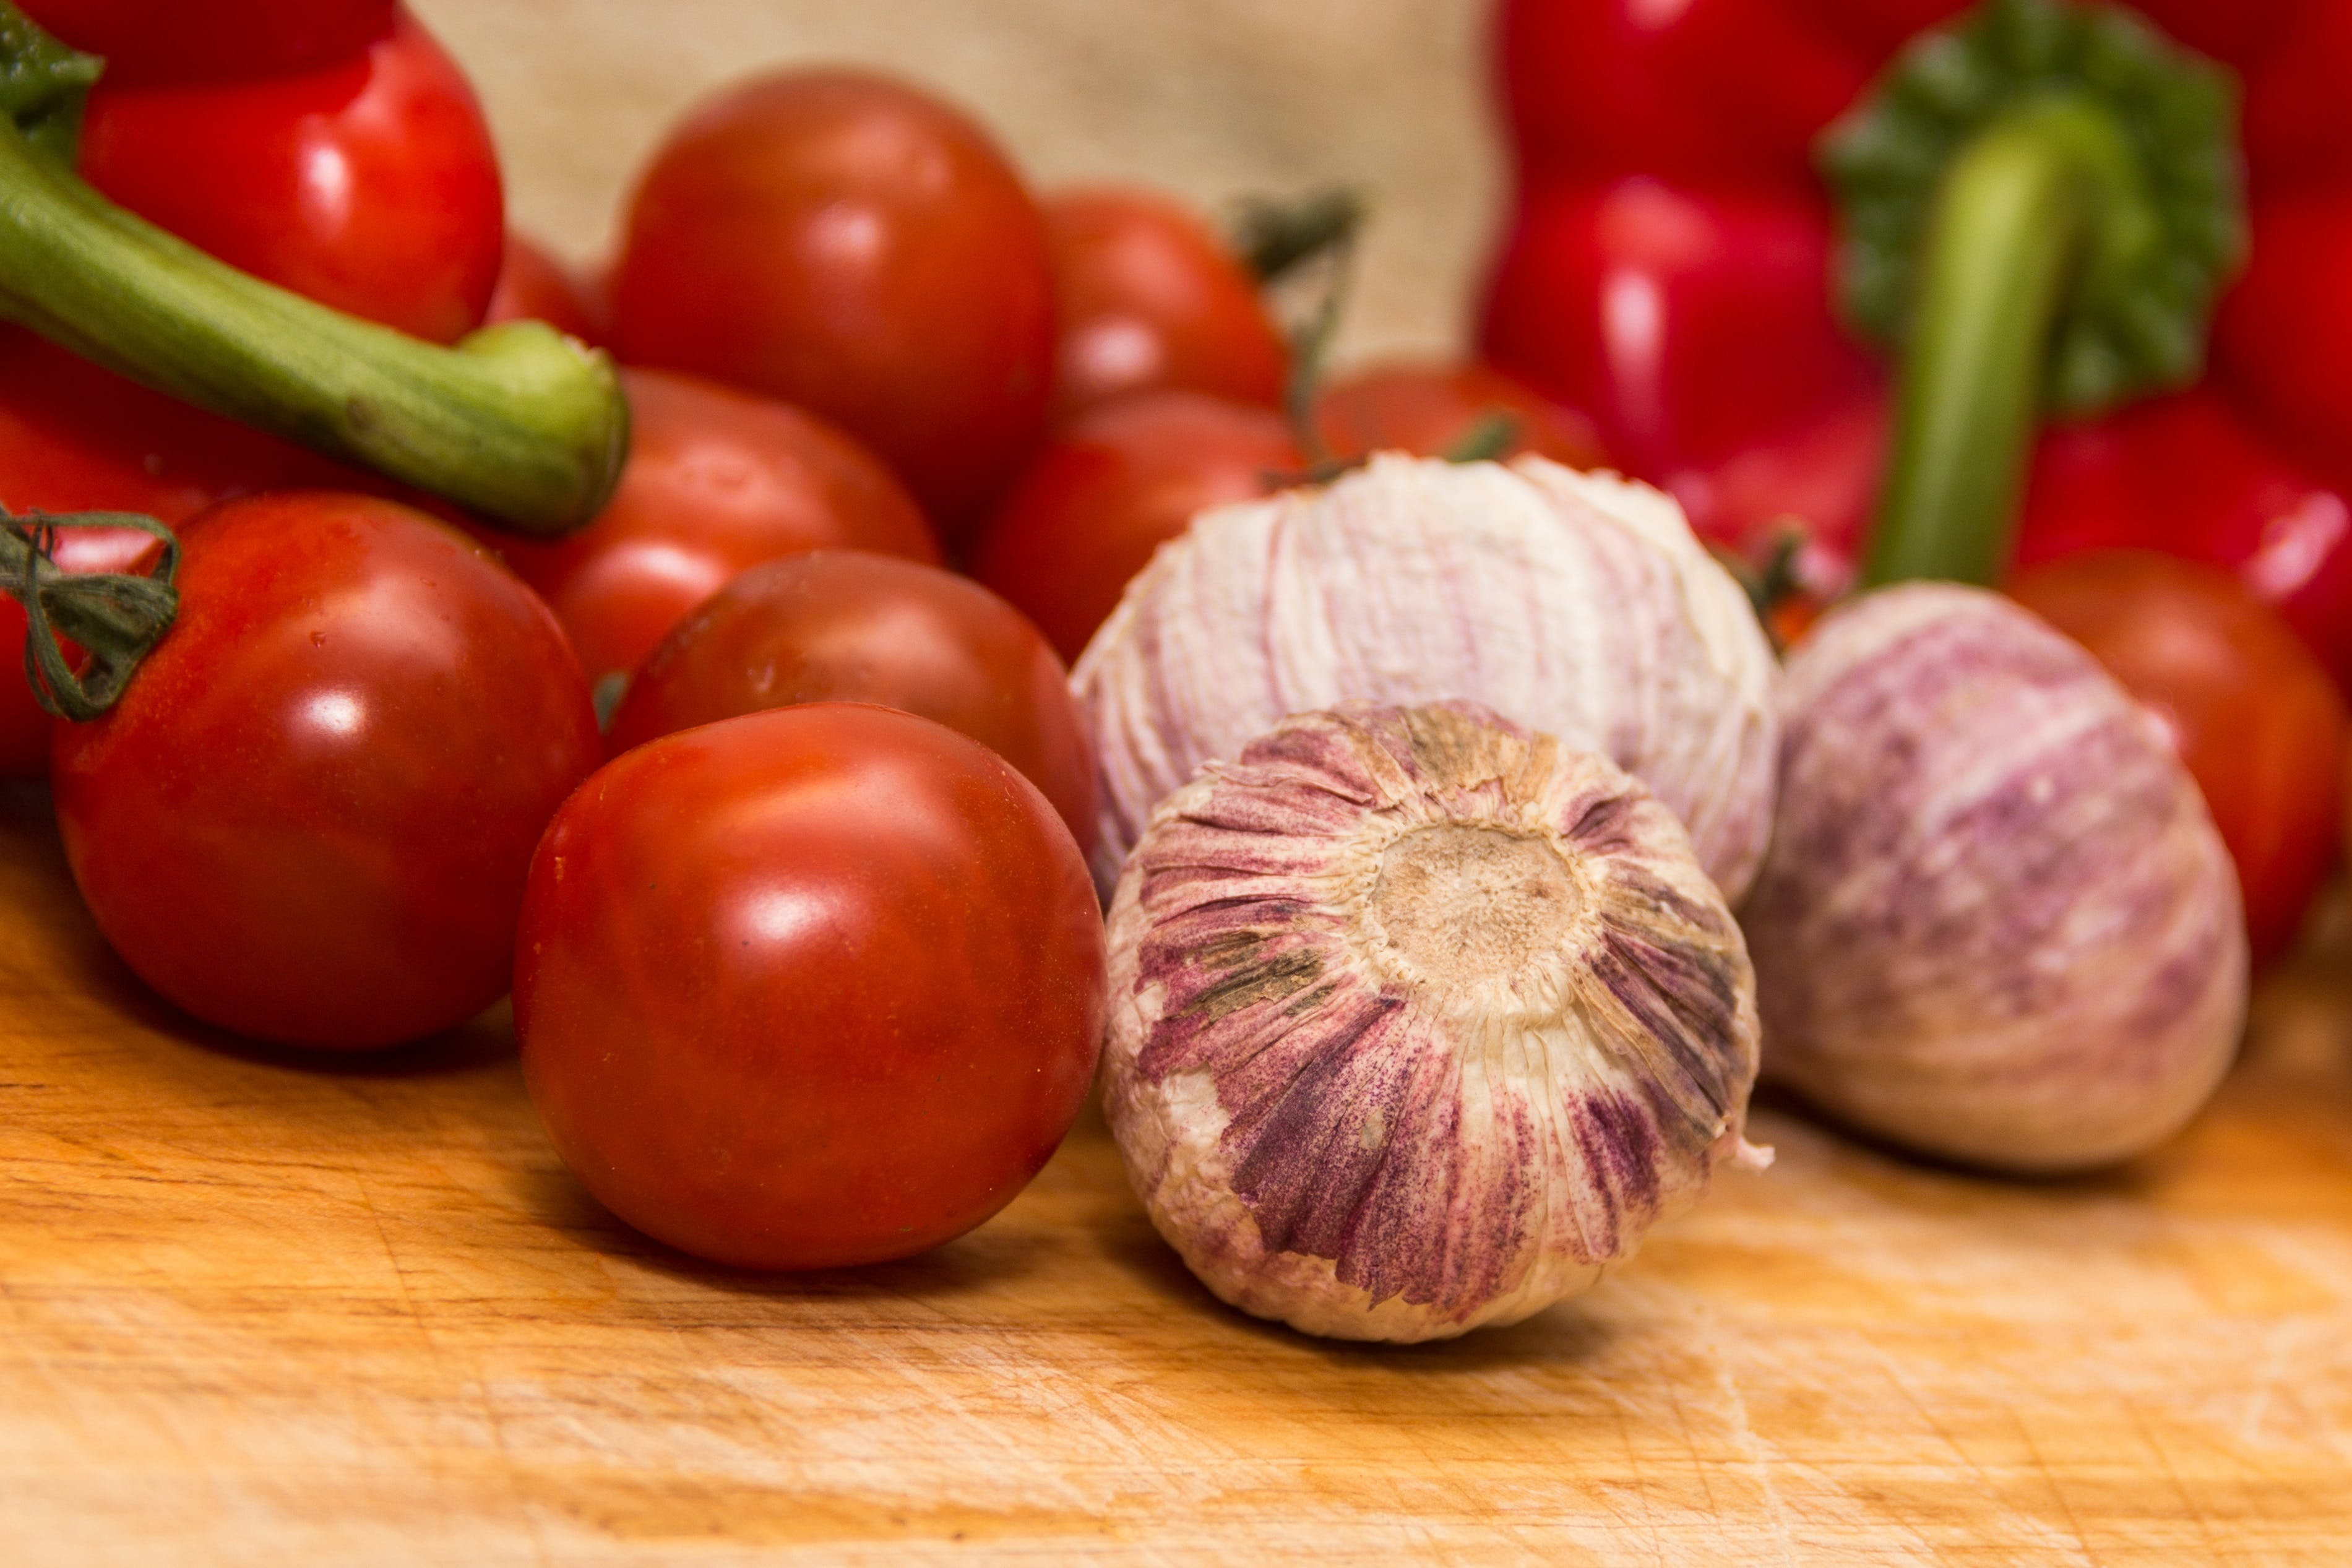 Red Tomatoes Beside Red Onions on Brown Wooden Table